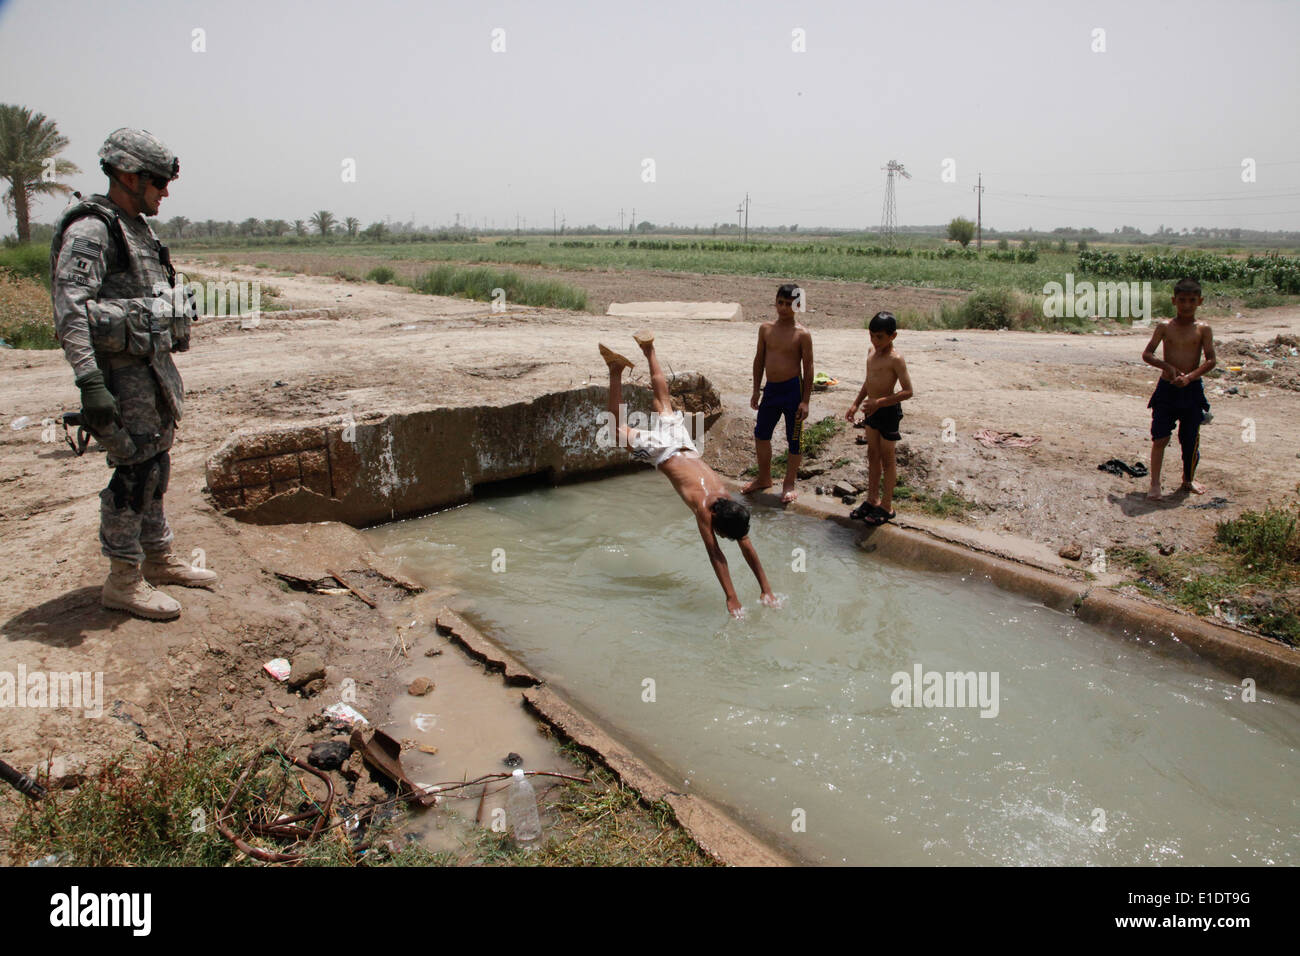 U.S. Army Capt. Andrew Lewis looks on as Iraqi boys play in a canal in Mullah Fayyed, Iraq, June 6, 2010. Lewis, who is command - Stock Image